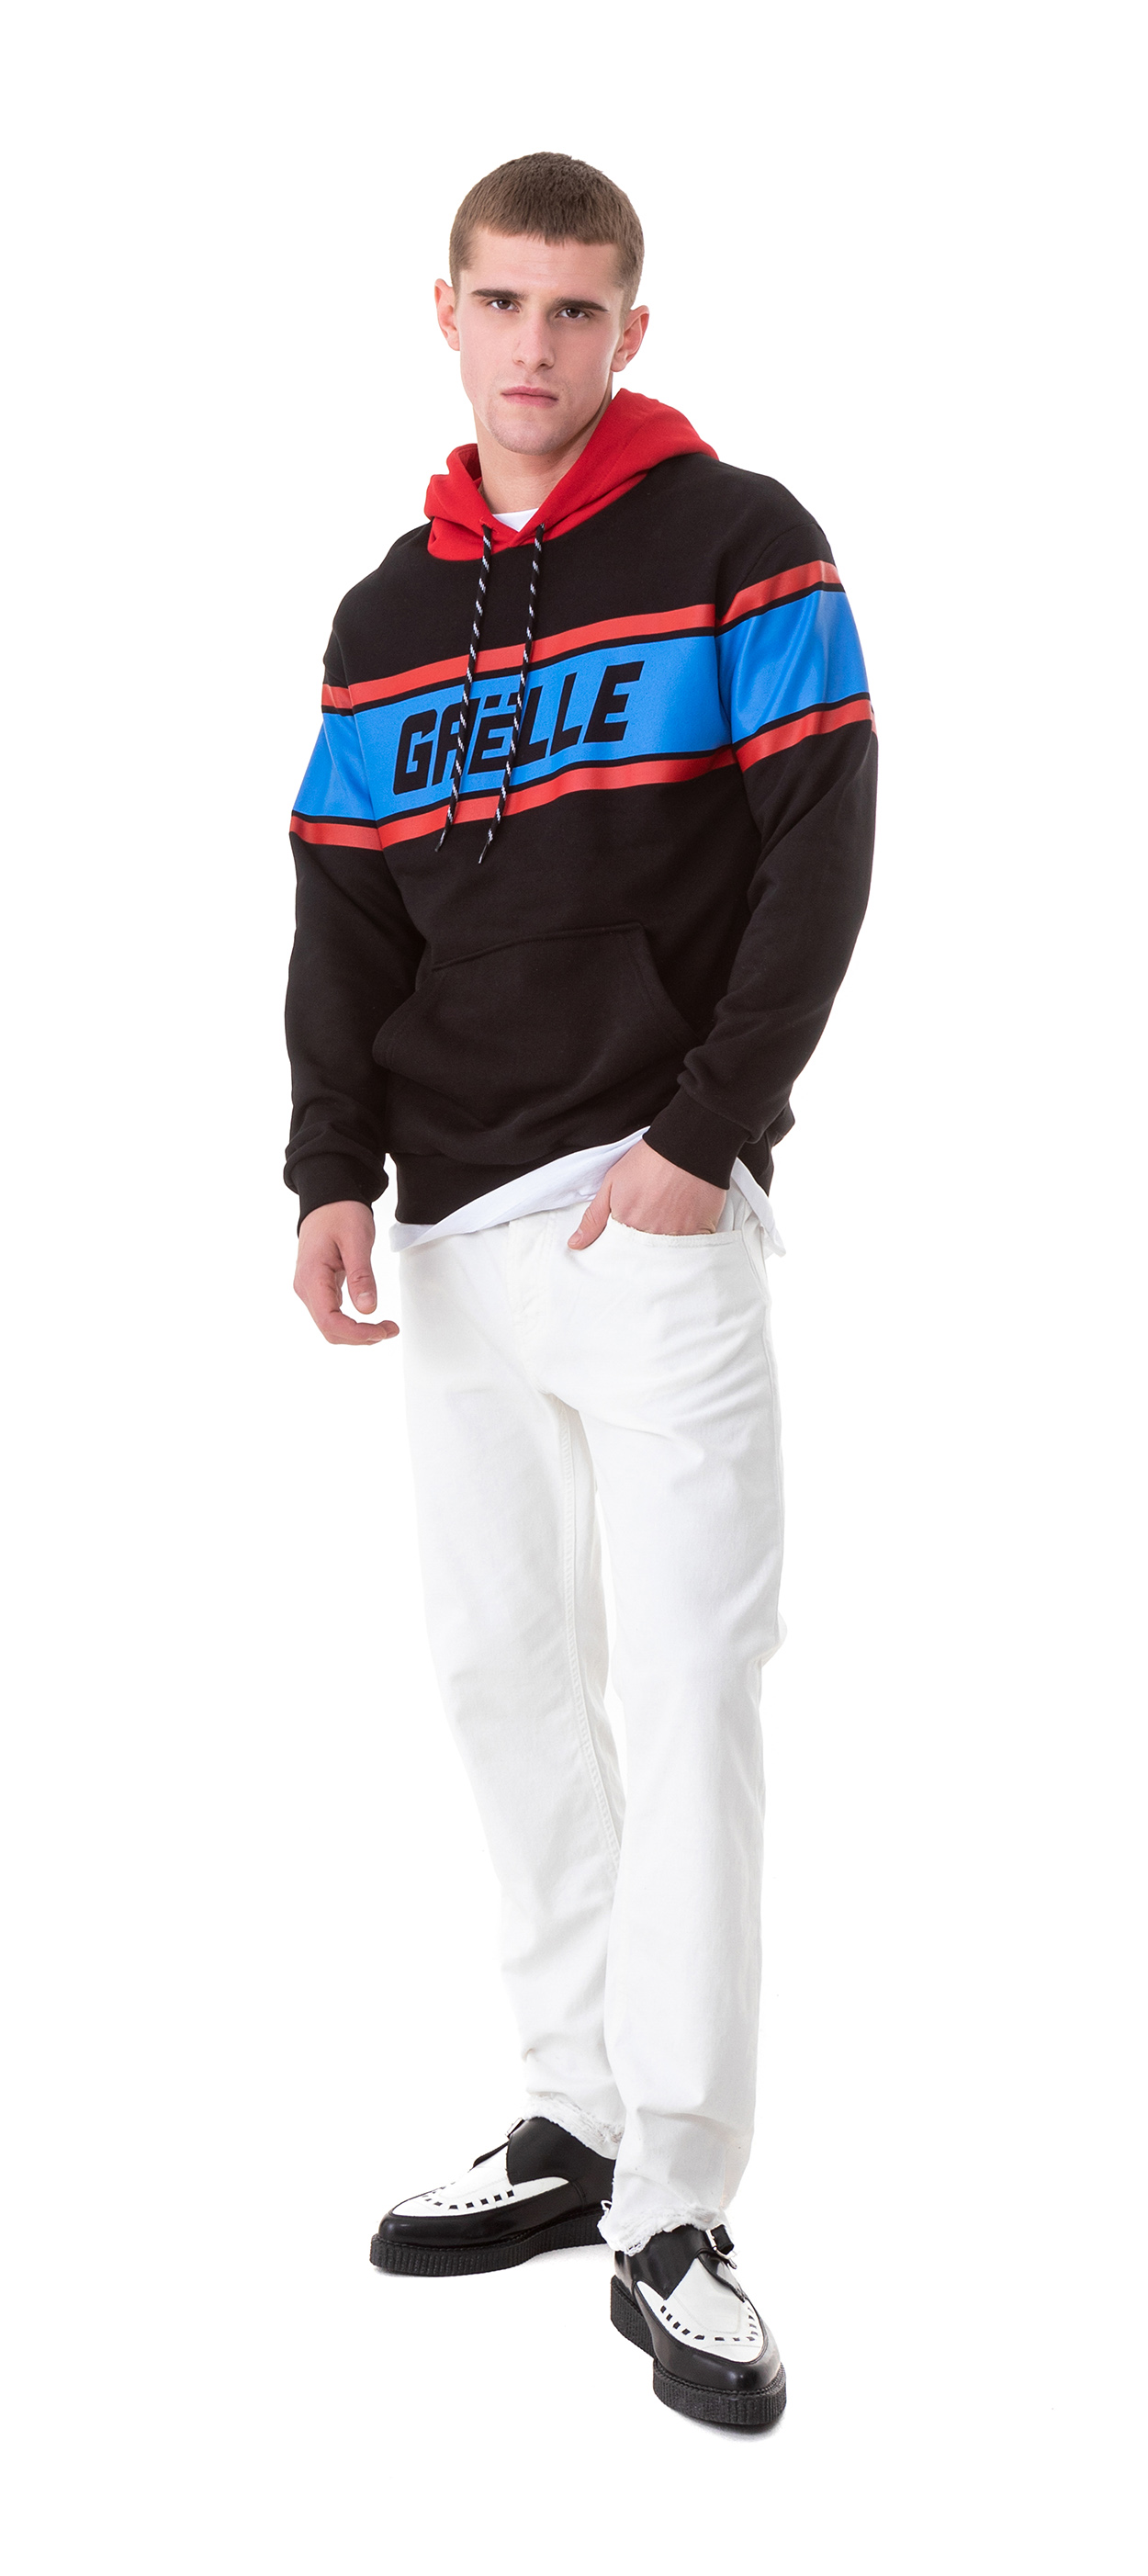 SWEATSHIRT - GBU2634 - GAELLE PARIS